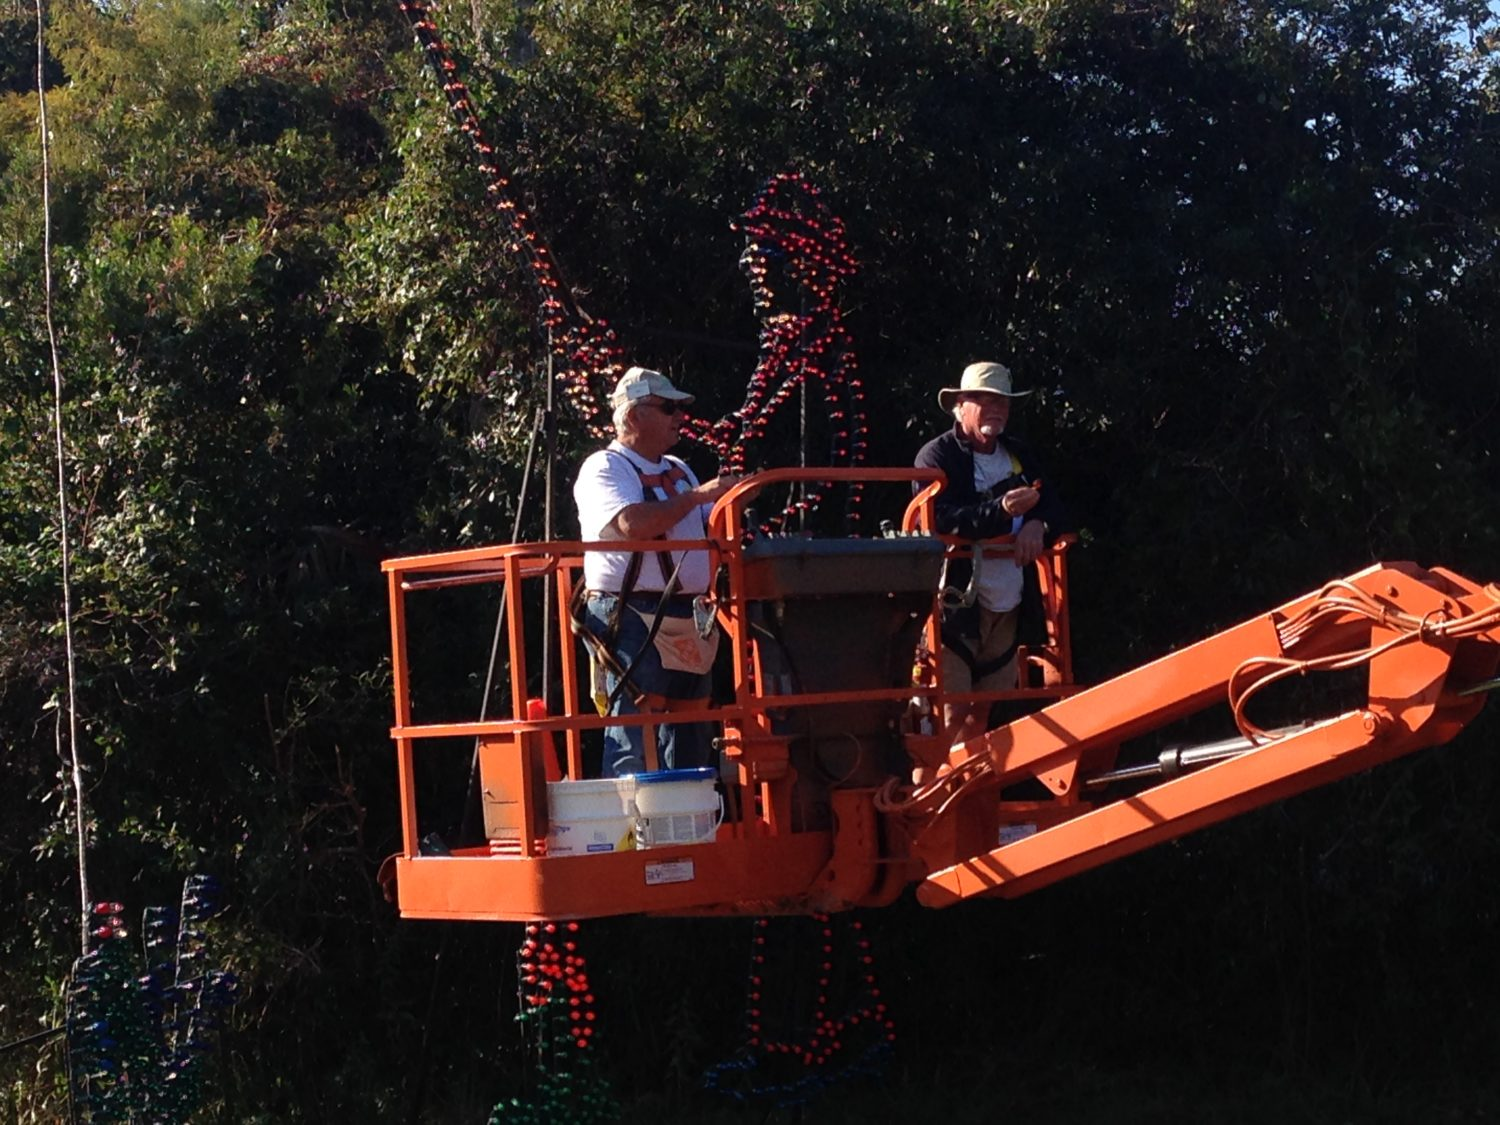 Staff working on light display at James Island County Park Festival of Lights.